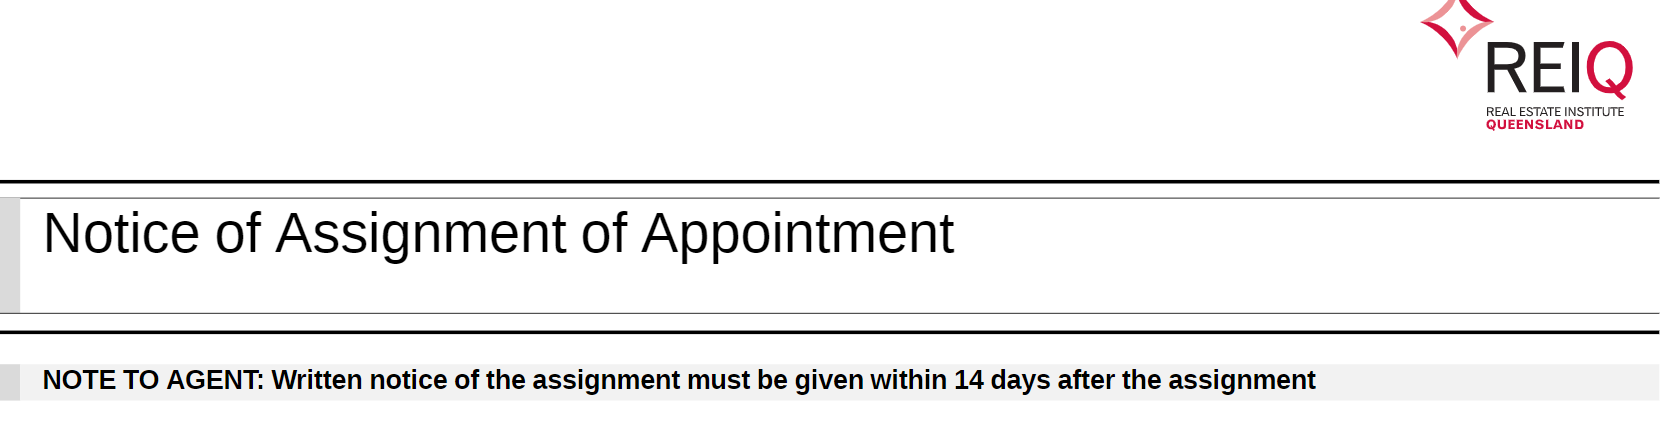 Notice of Assignment of Appointment